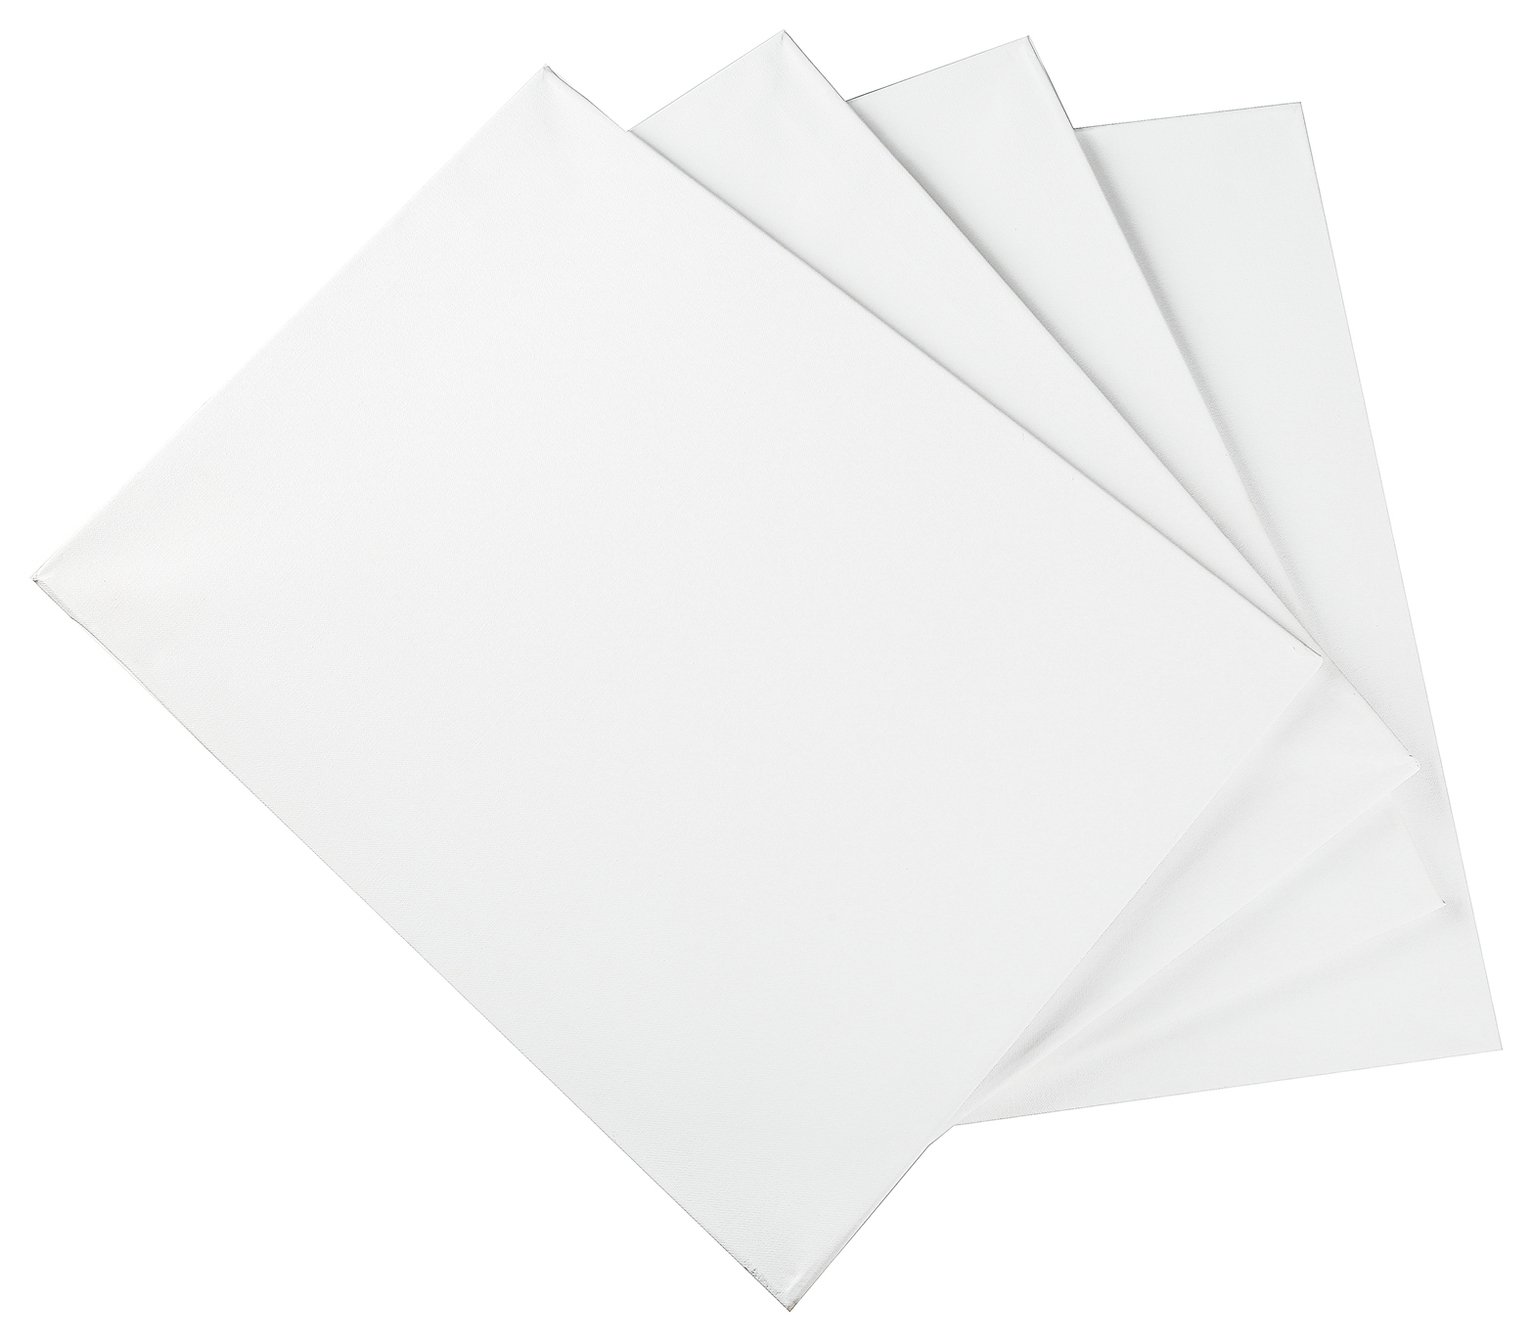 YXSH Pack of 4 Canvasses - 24 x 18 Inches